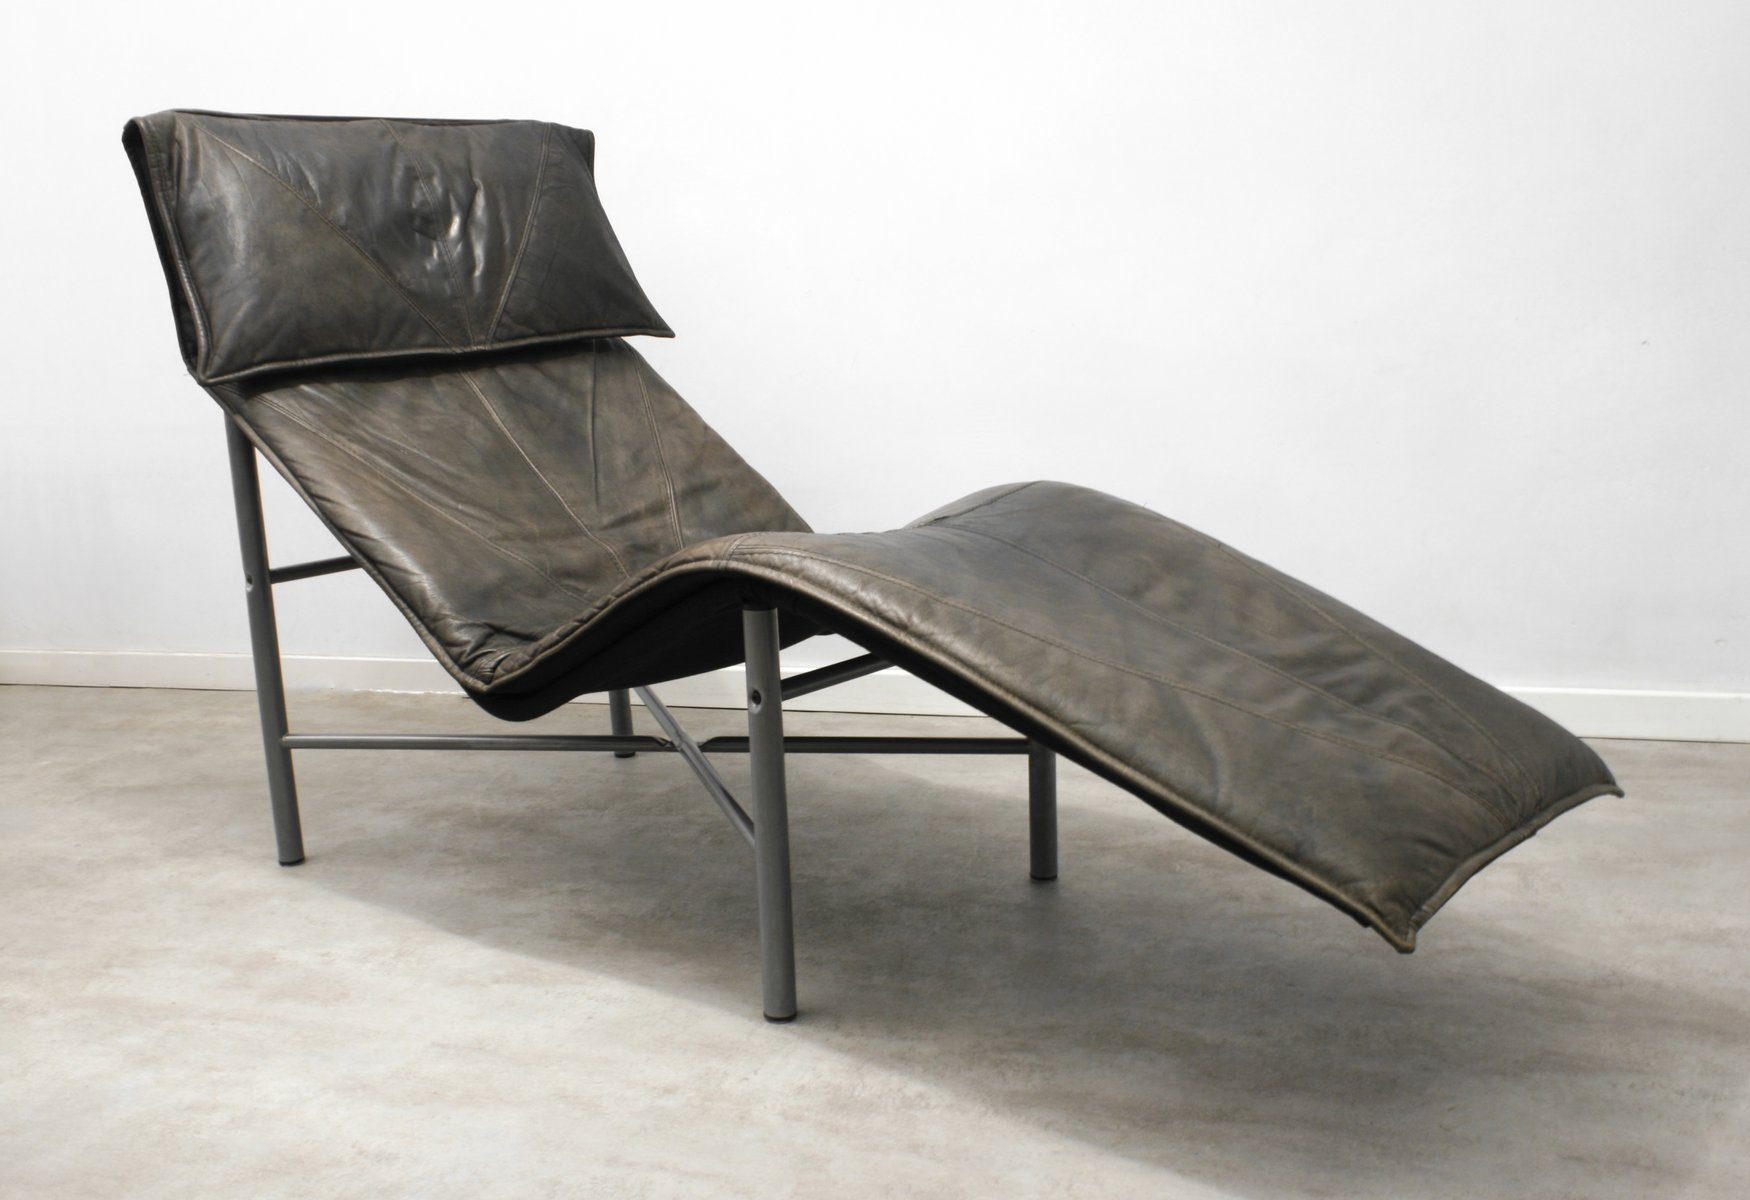 brown leather skye chaise lounge by tord bj rklund for ikea 1980s for sale at pamono. Black Bedroom Furniture Sets. Home Design Ideas